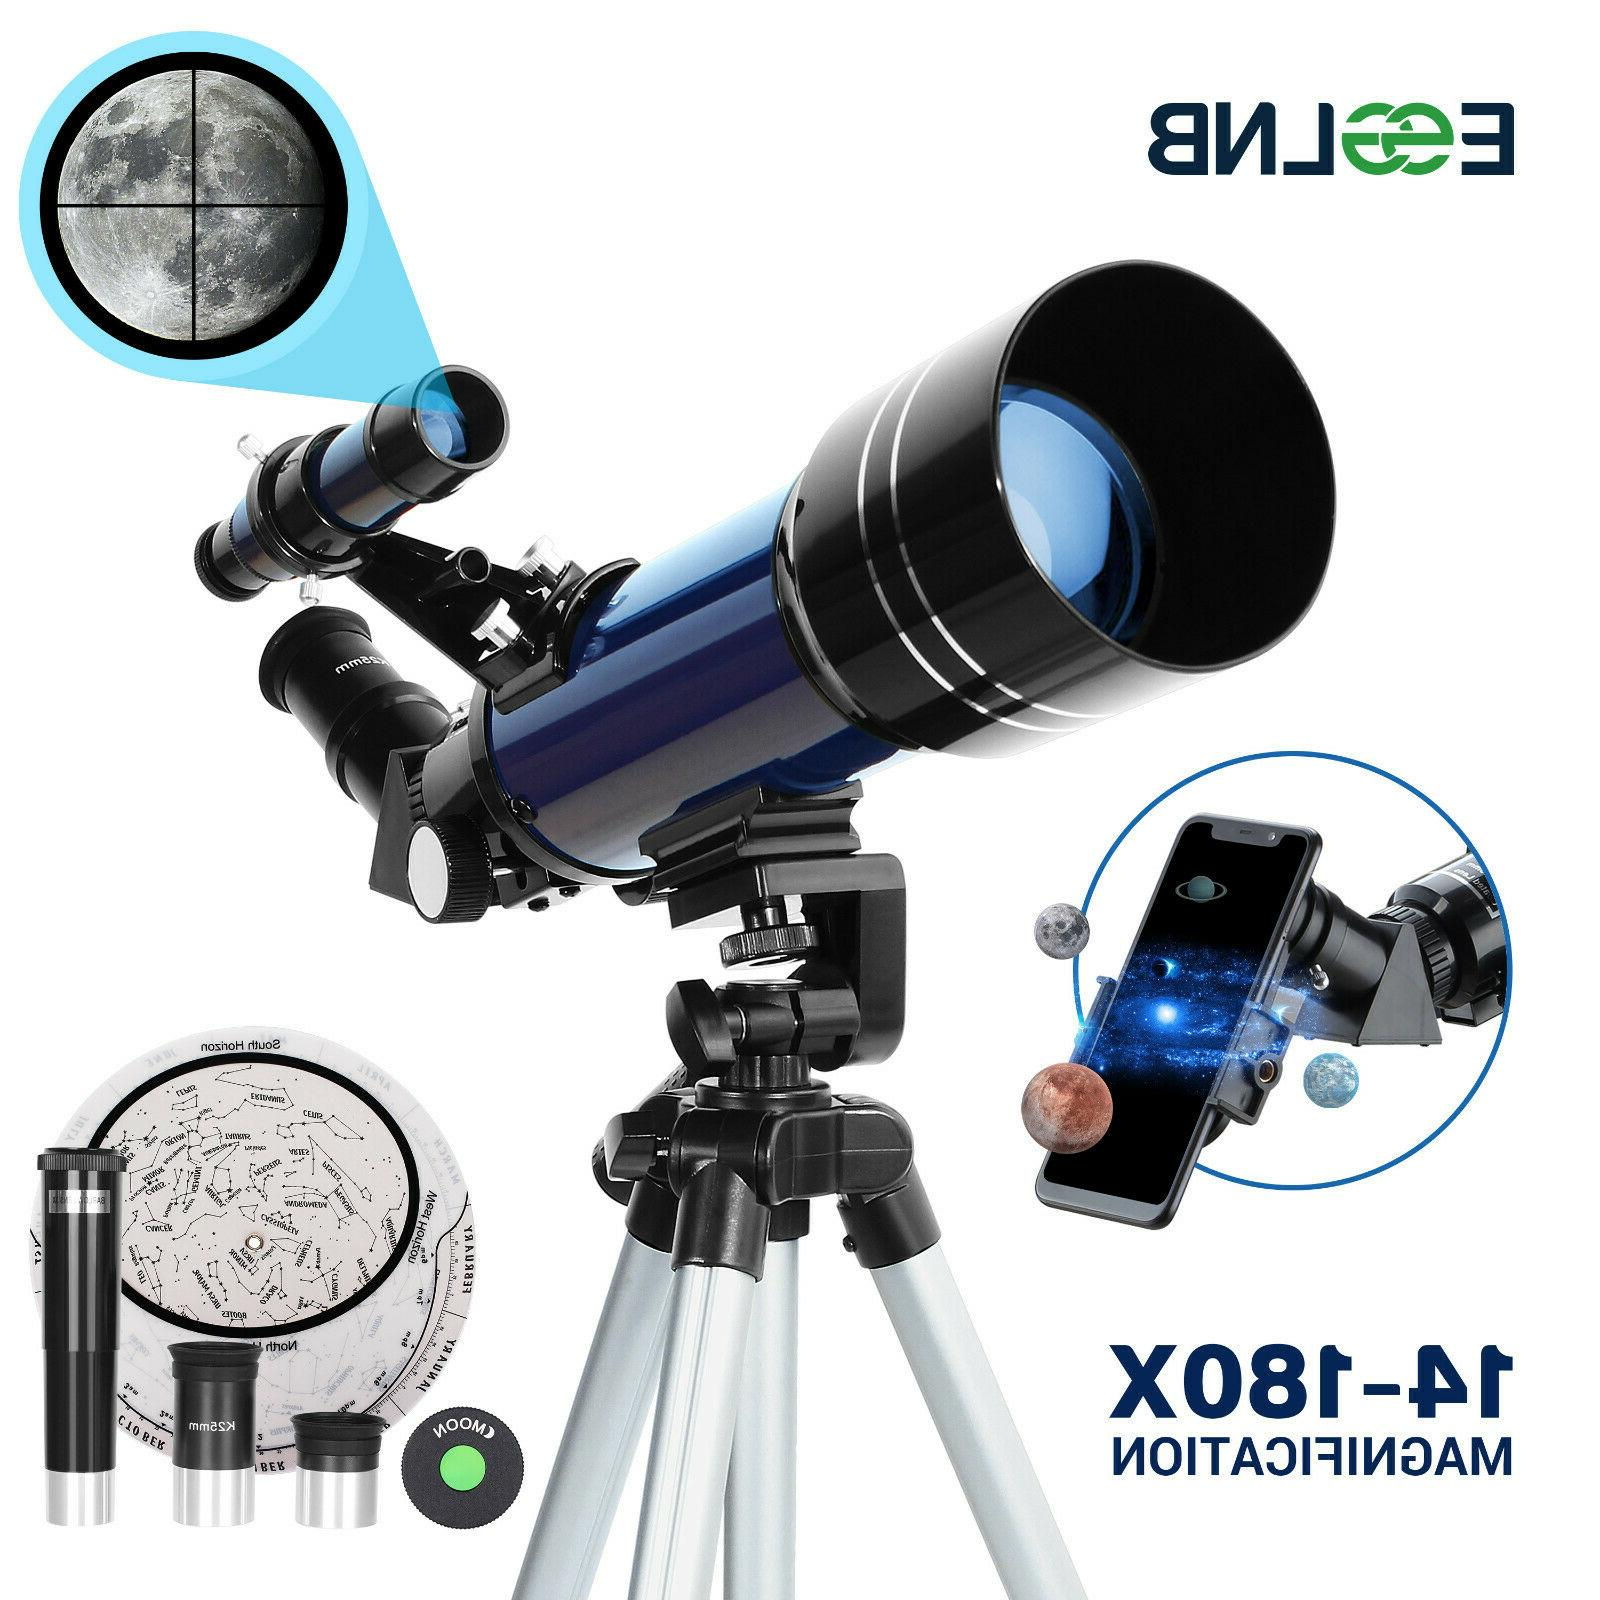 36070 Telescope Magnification Astronomical Refractive Tripod Space